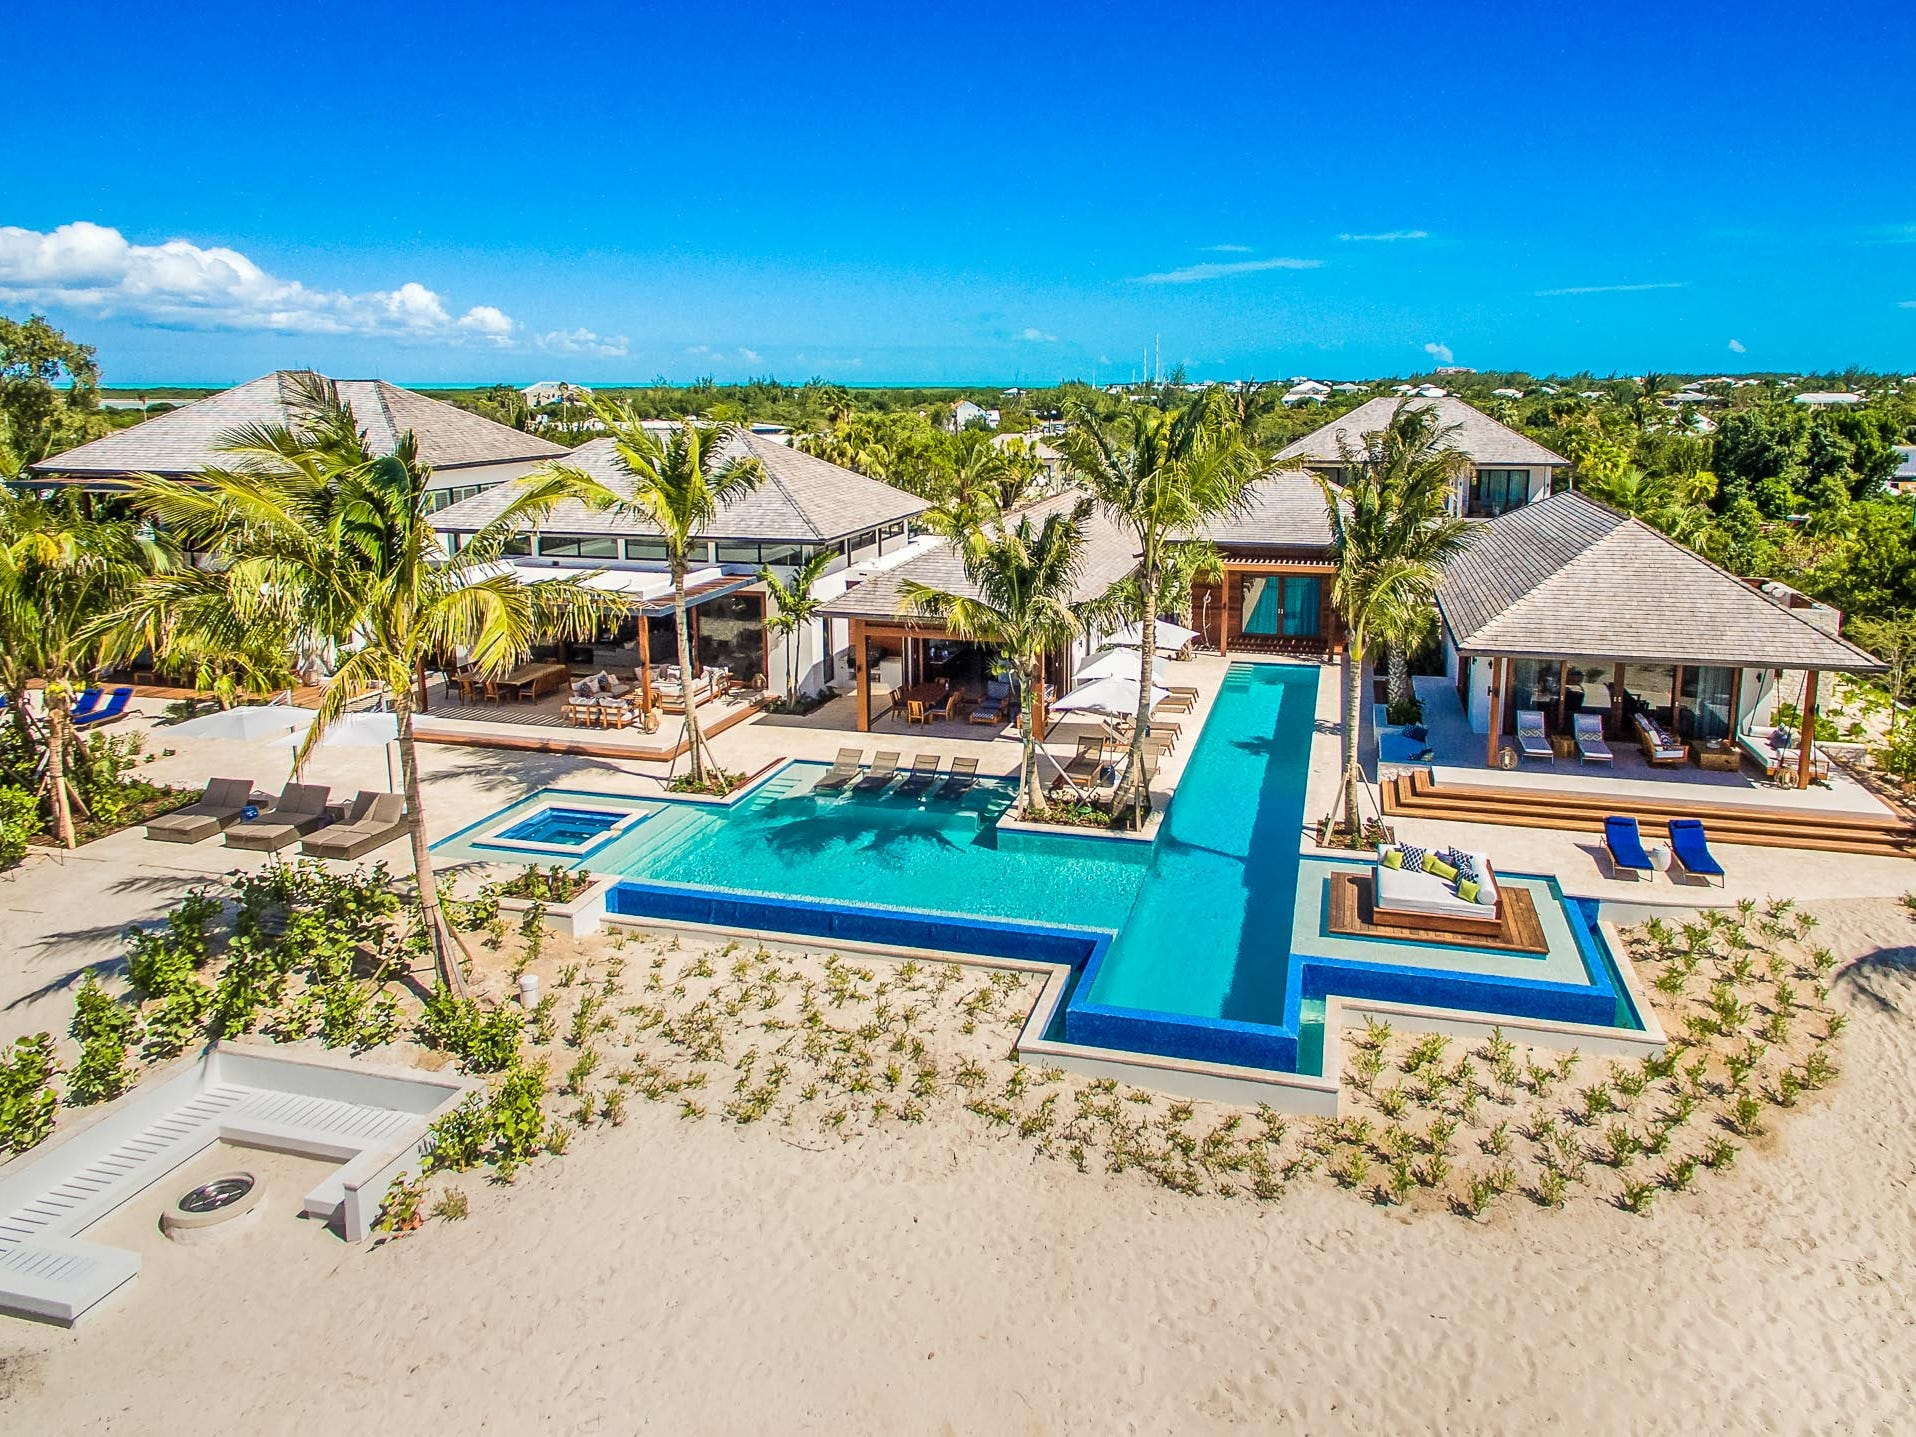 This 10-bedroom property on Grace Bay in Turks and Caicos sleeps 20 and rents for $12,400 - $36,800 a night.